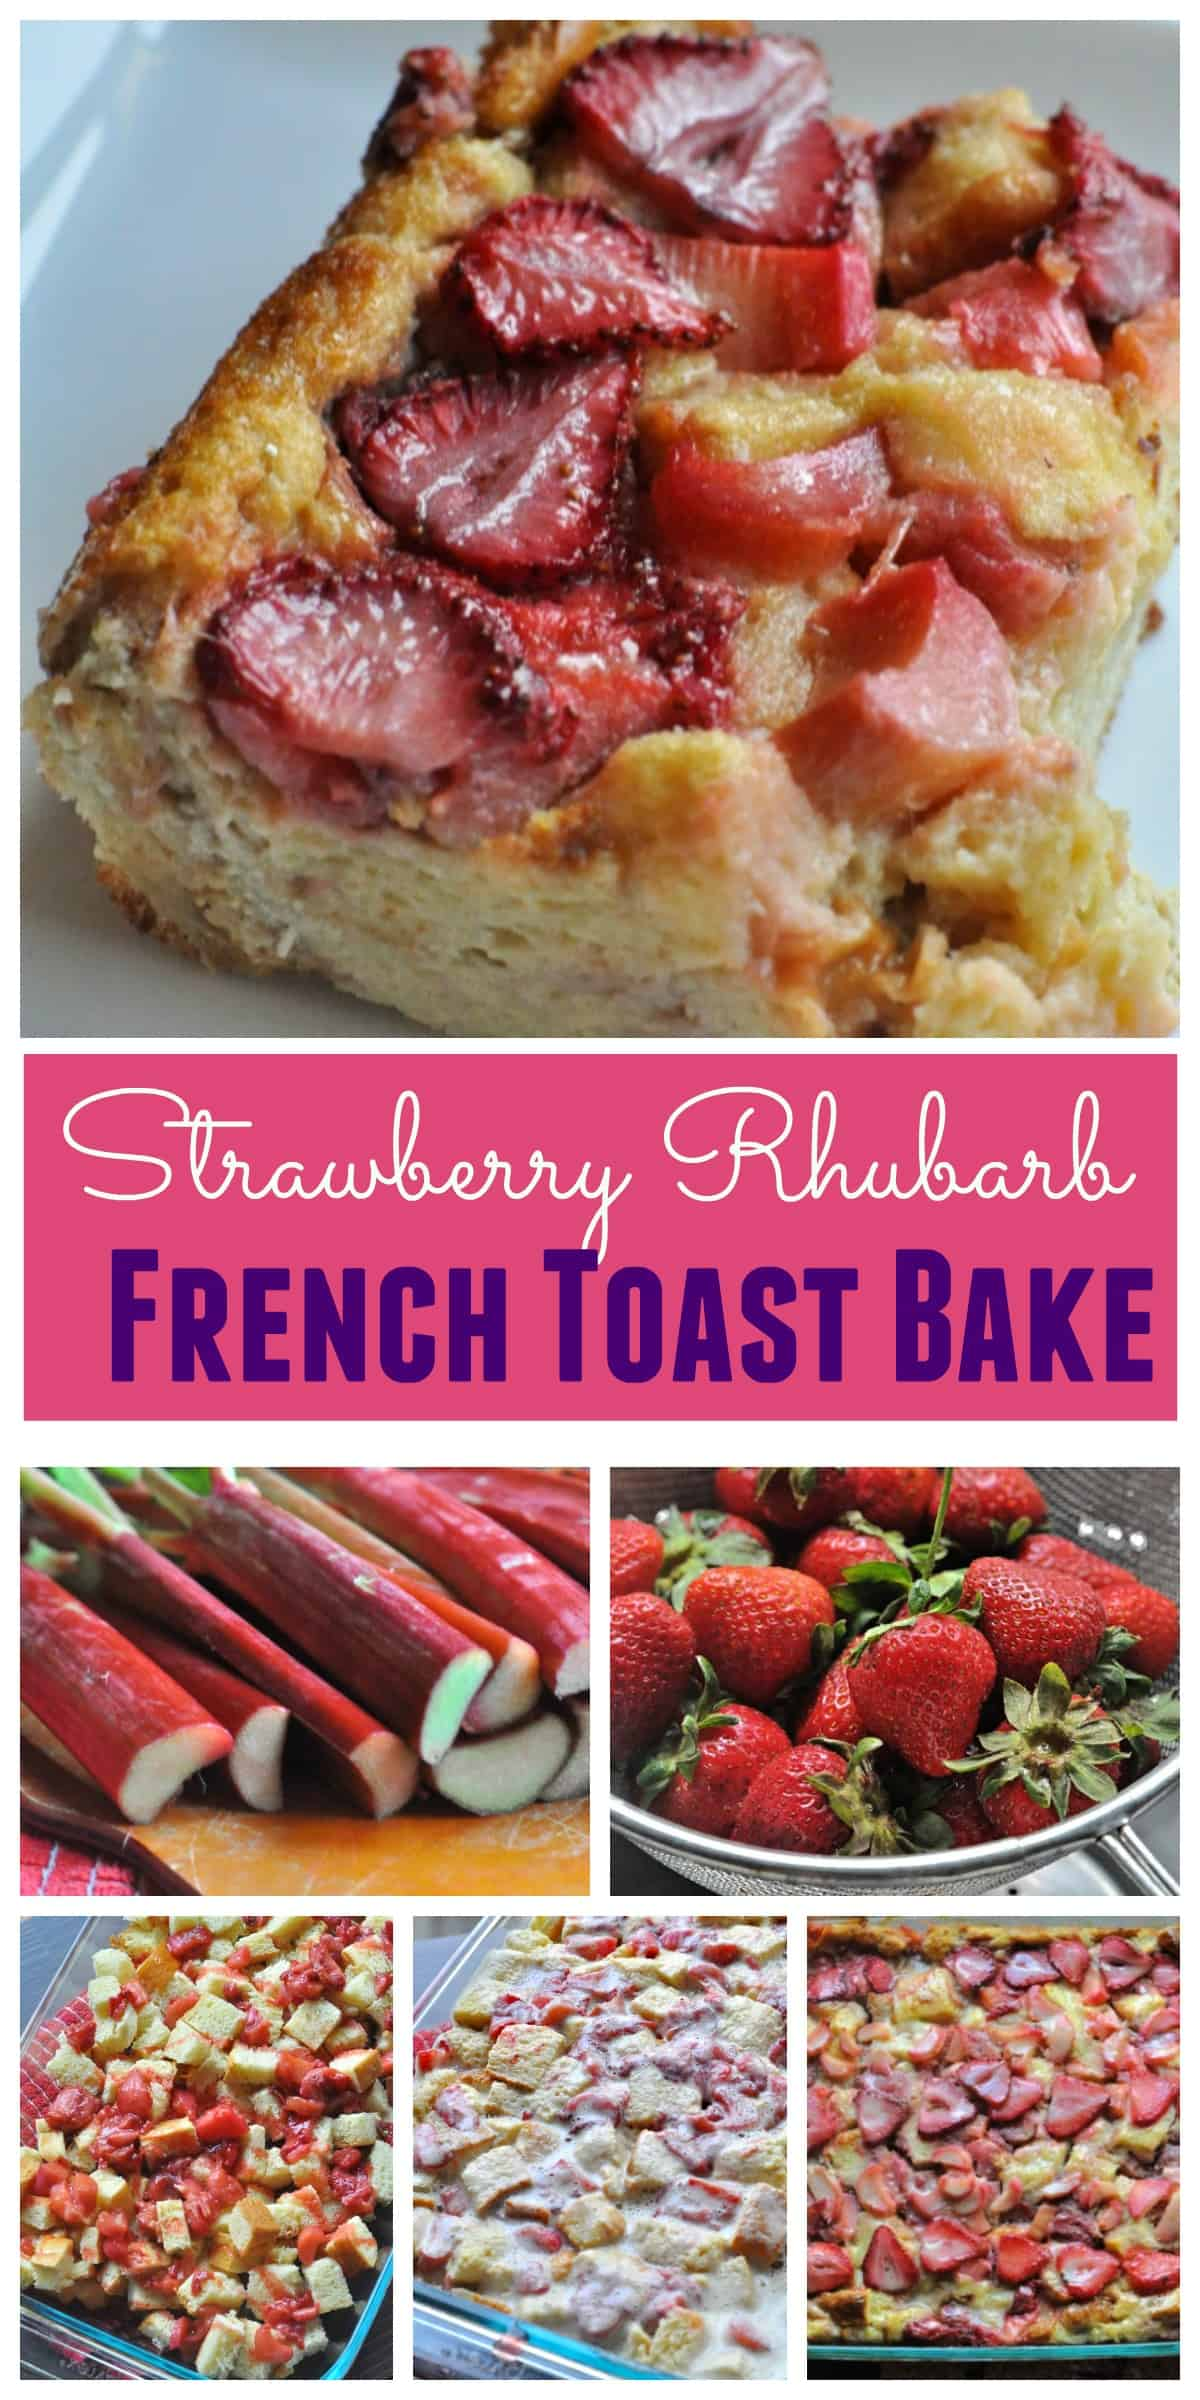 Strawberry Rhubarb French Toast Bake recipe brioche bread